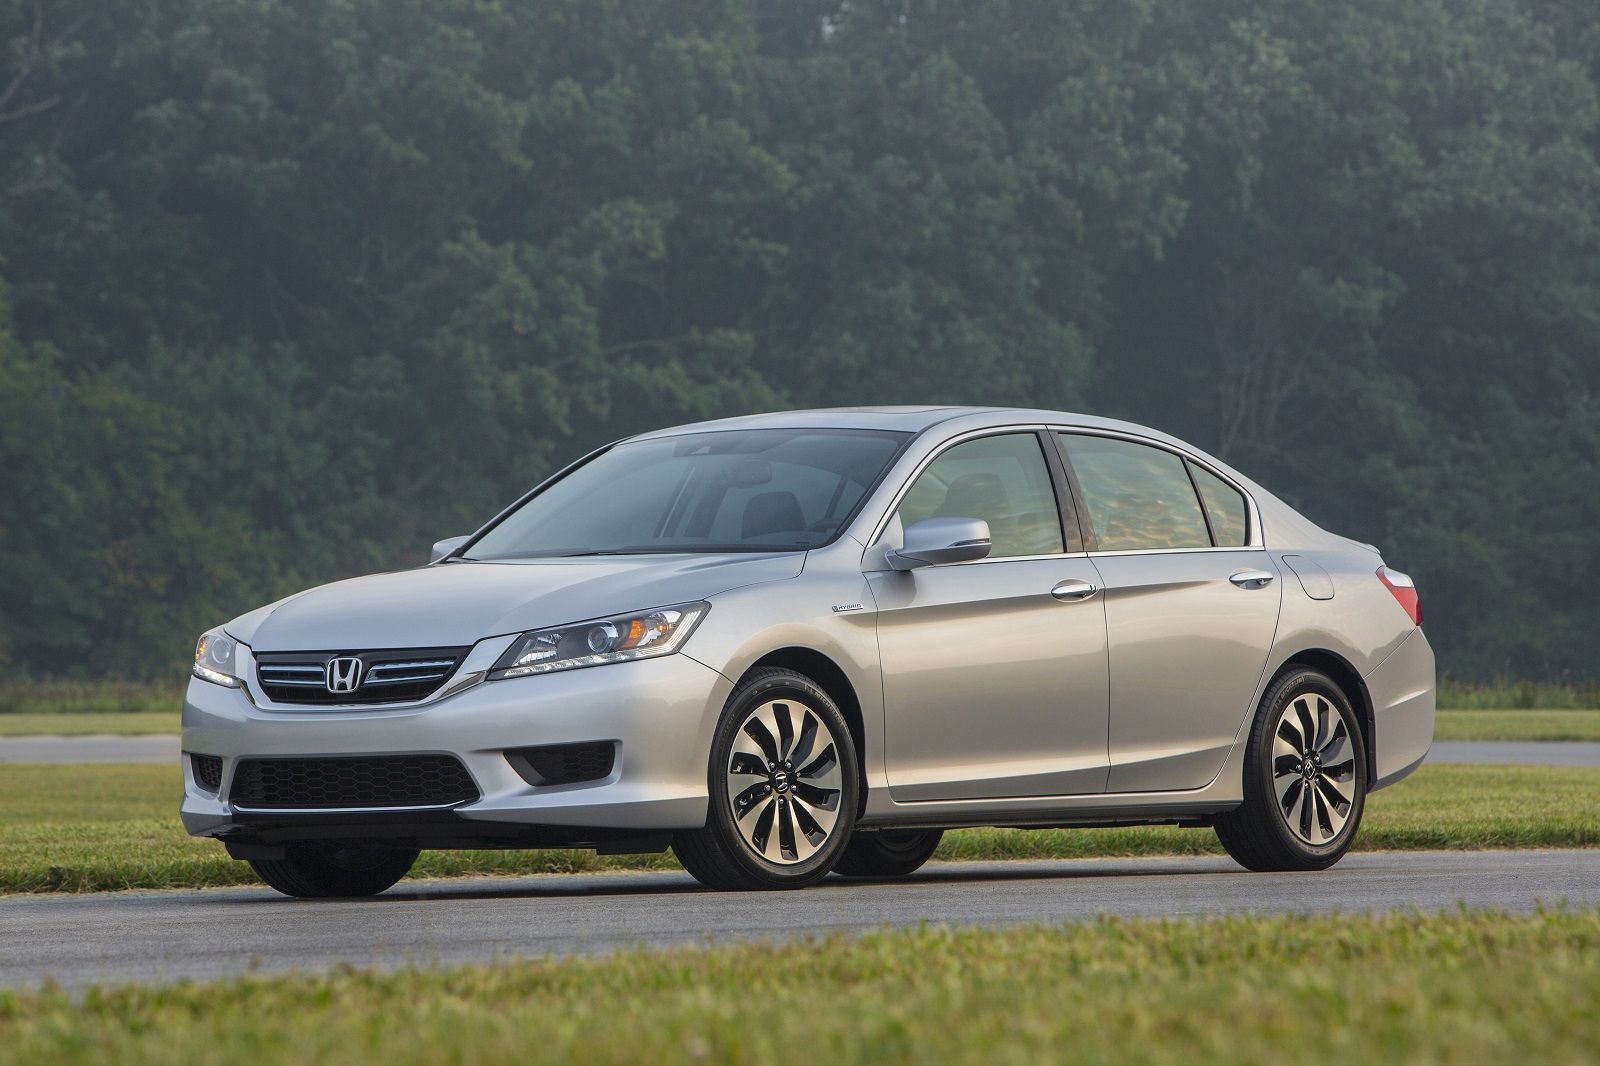 2015 Honda Accord Hybrid Specs and Price For your best